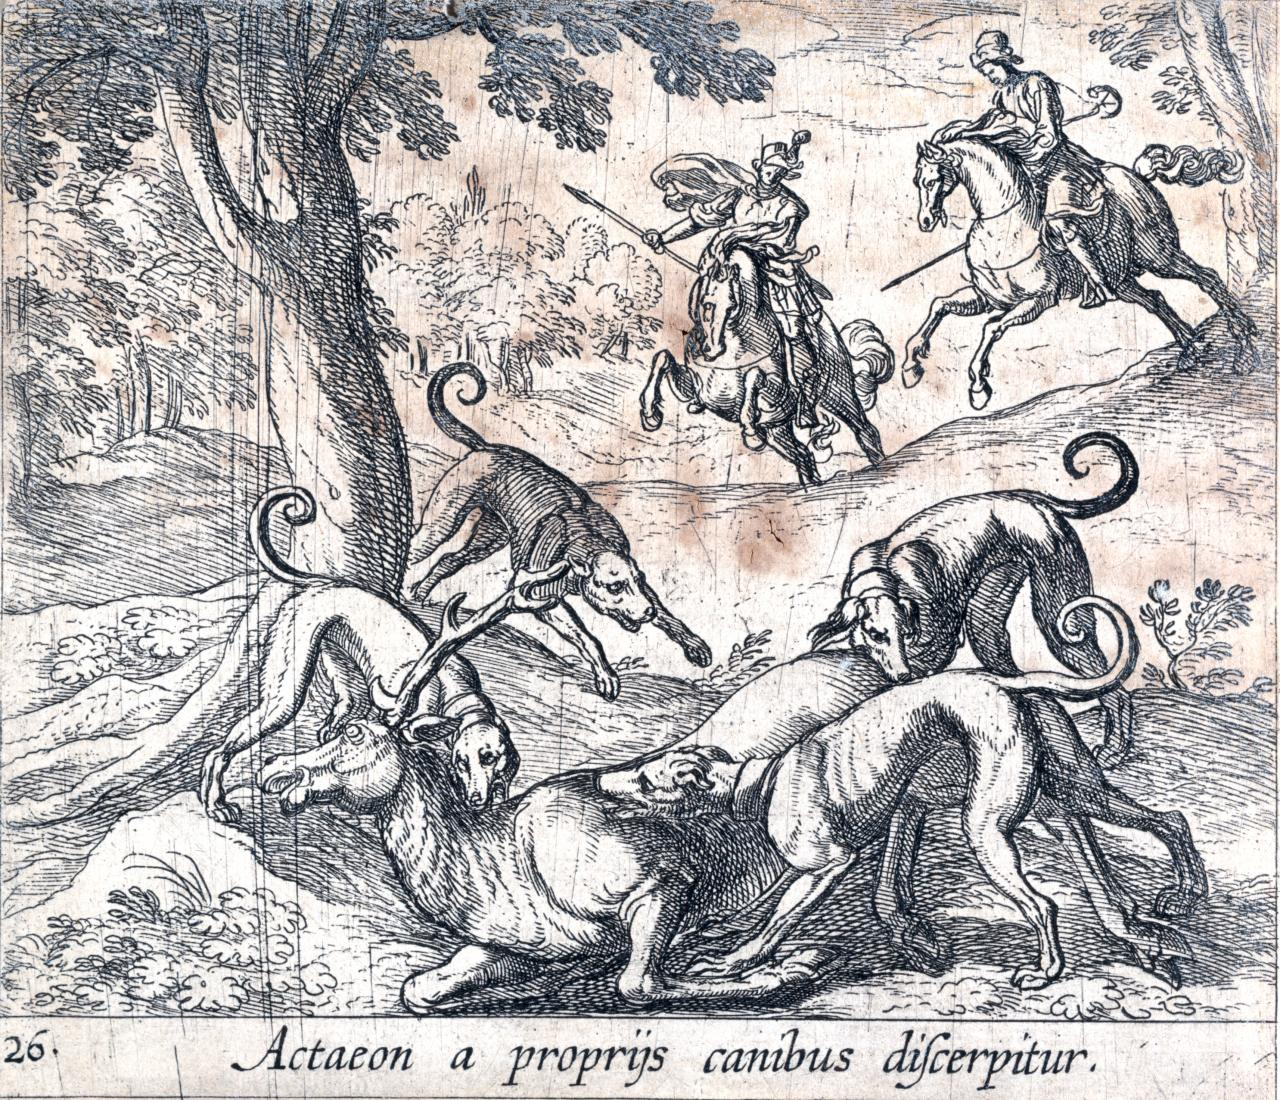 Drawn stag hunting NGV depiction grisly not Actaeon